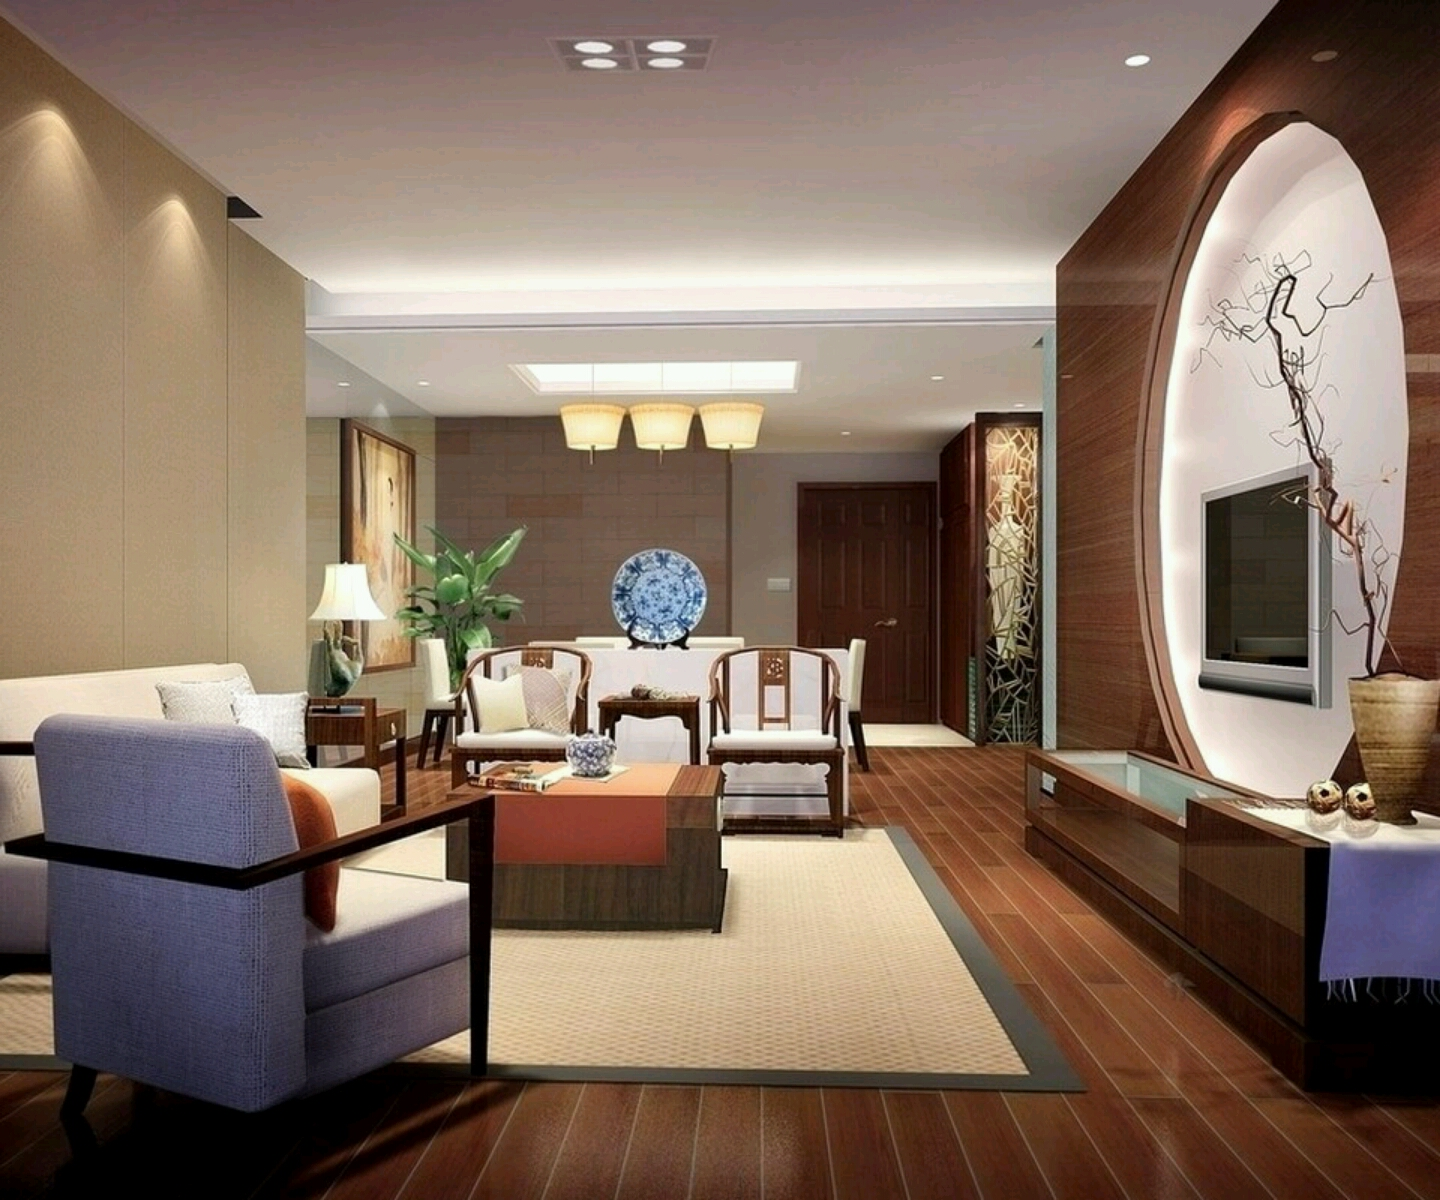 Luxury homes interior decoration living room designs ideas for New room design ideas